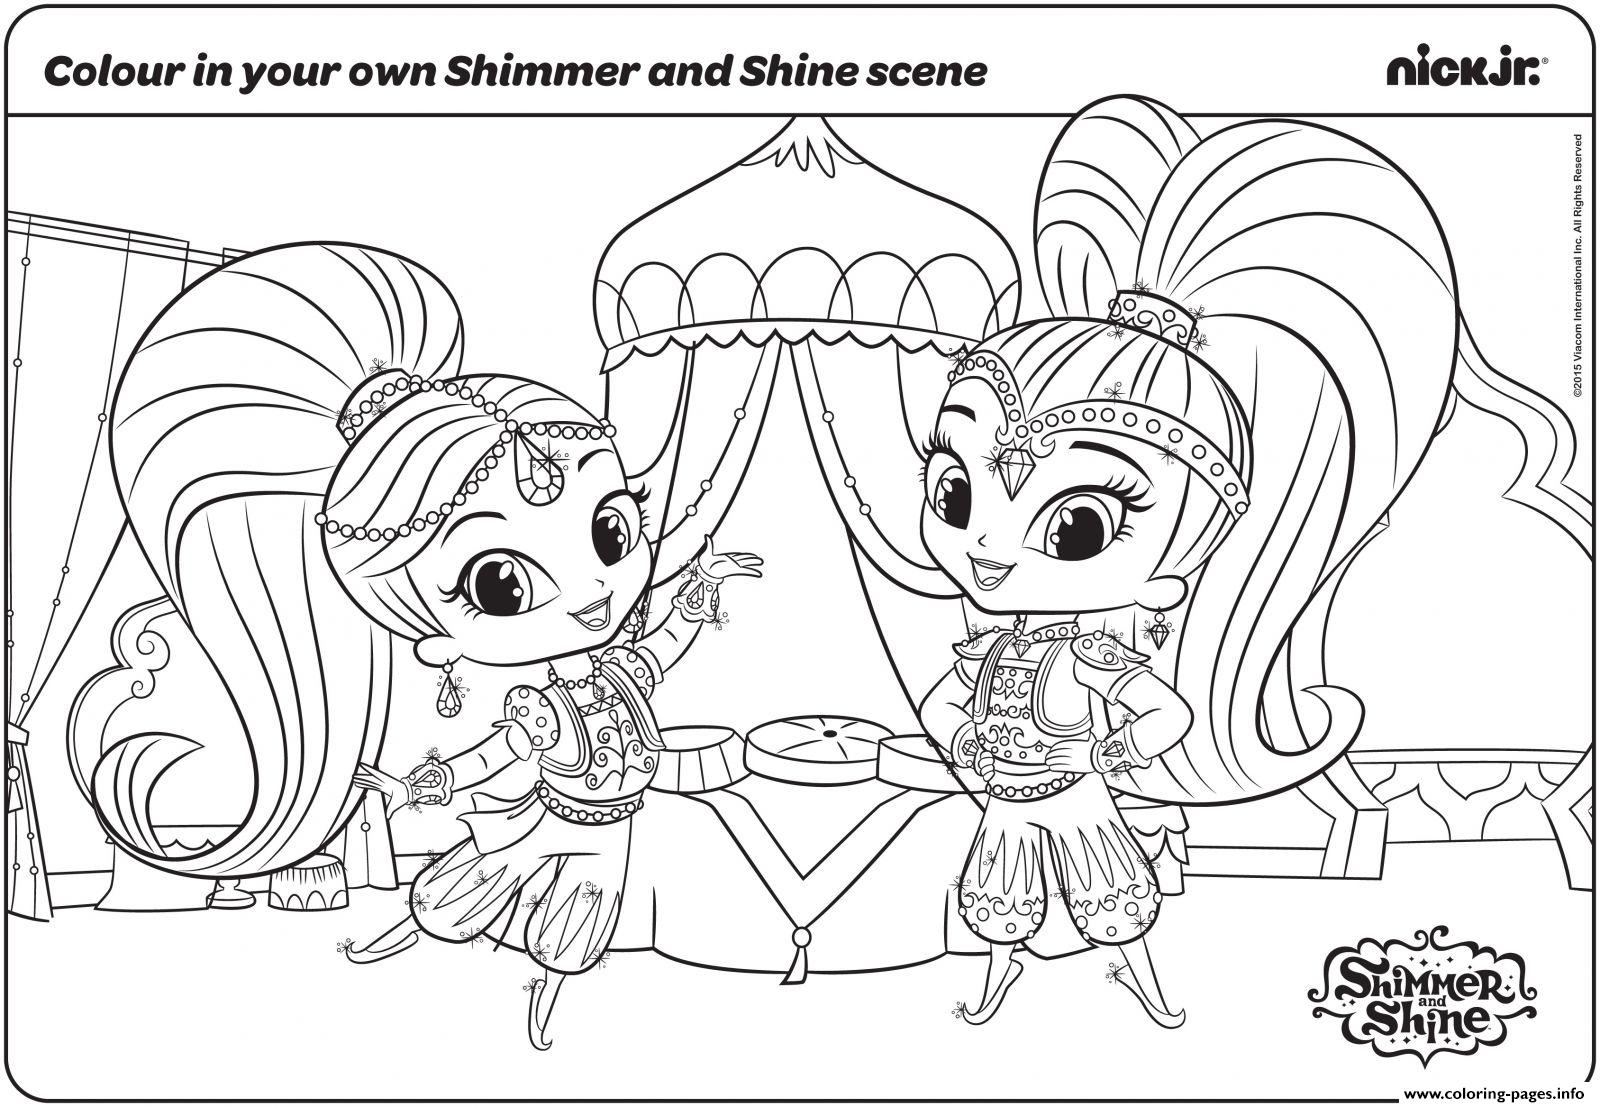 Free cartoon coloring pictures - Shimmer And Shine Fun With Colouring Page Coloring Pages Printable